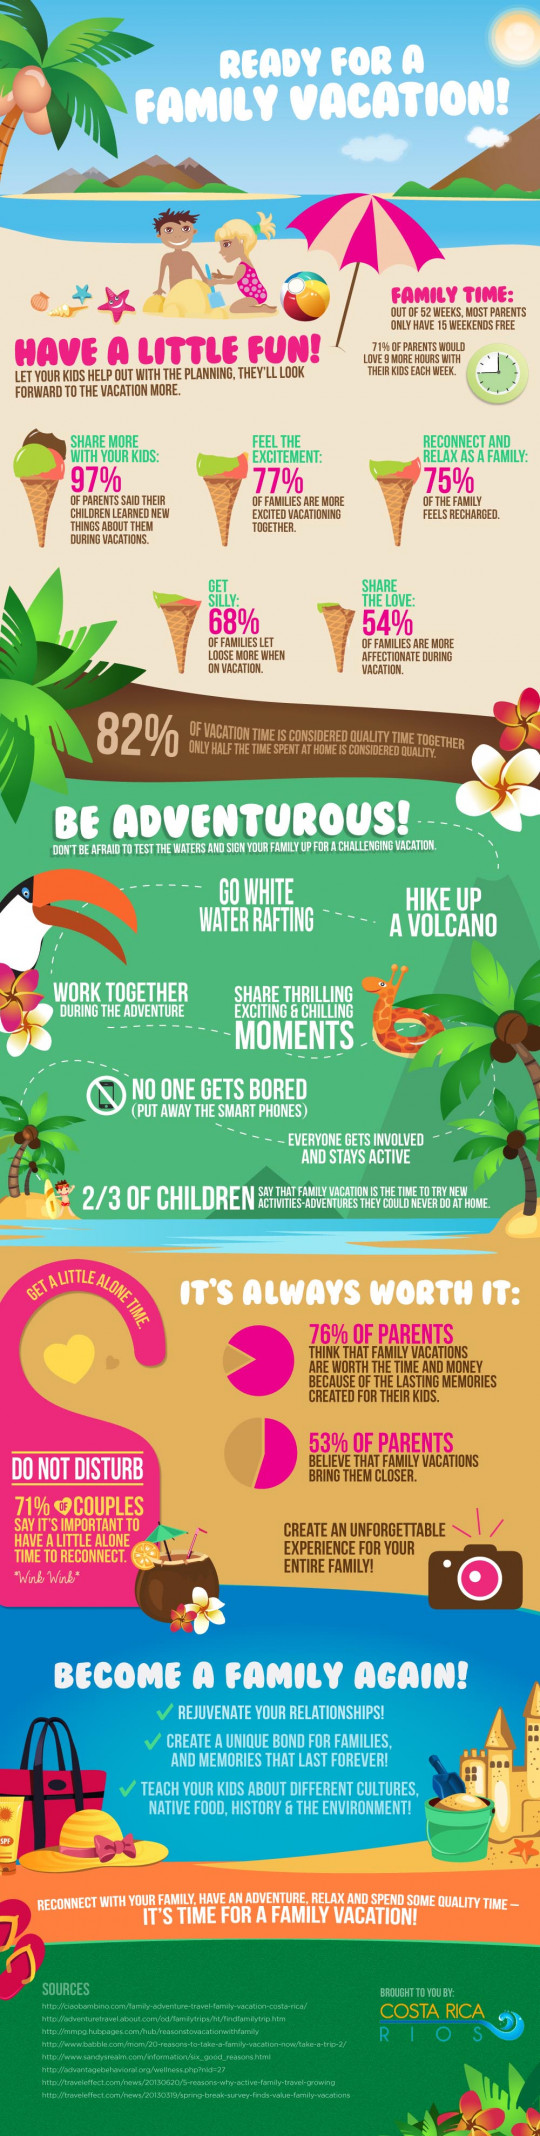 Are You Ready For A Family Vacation? - An [Infographic]